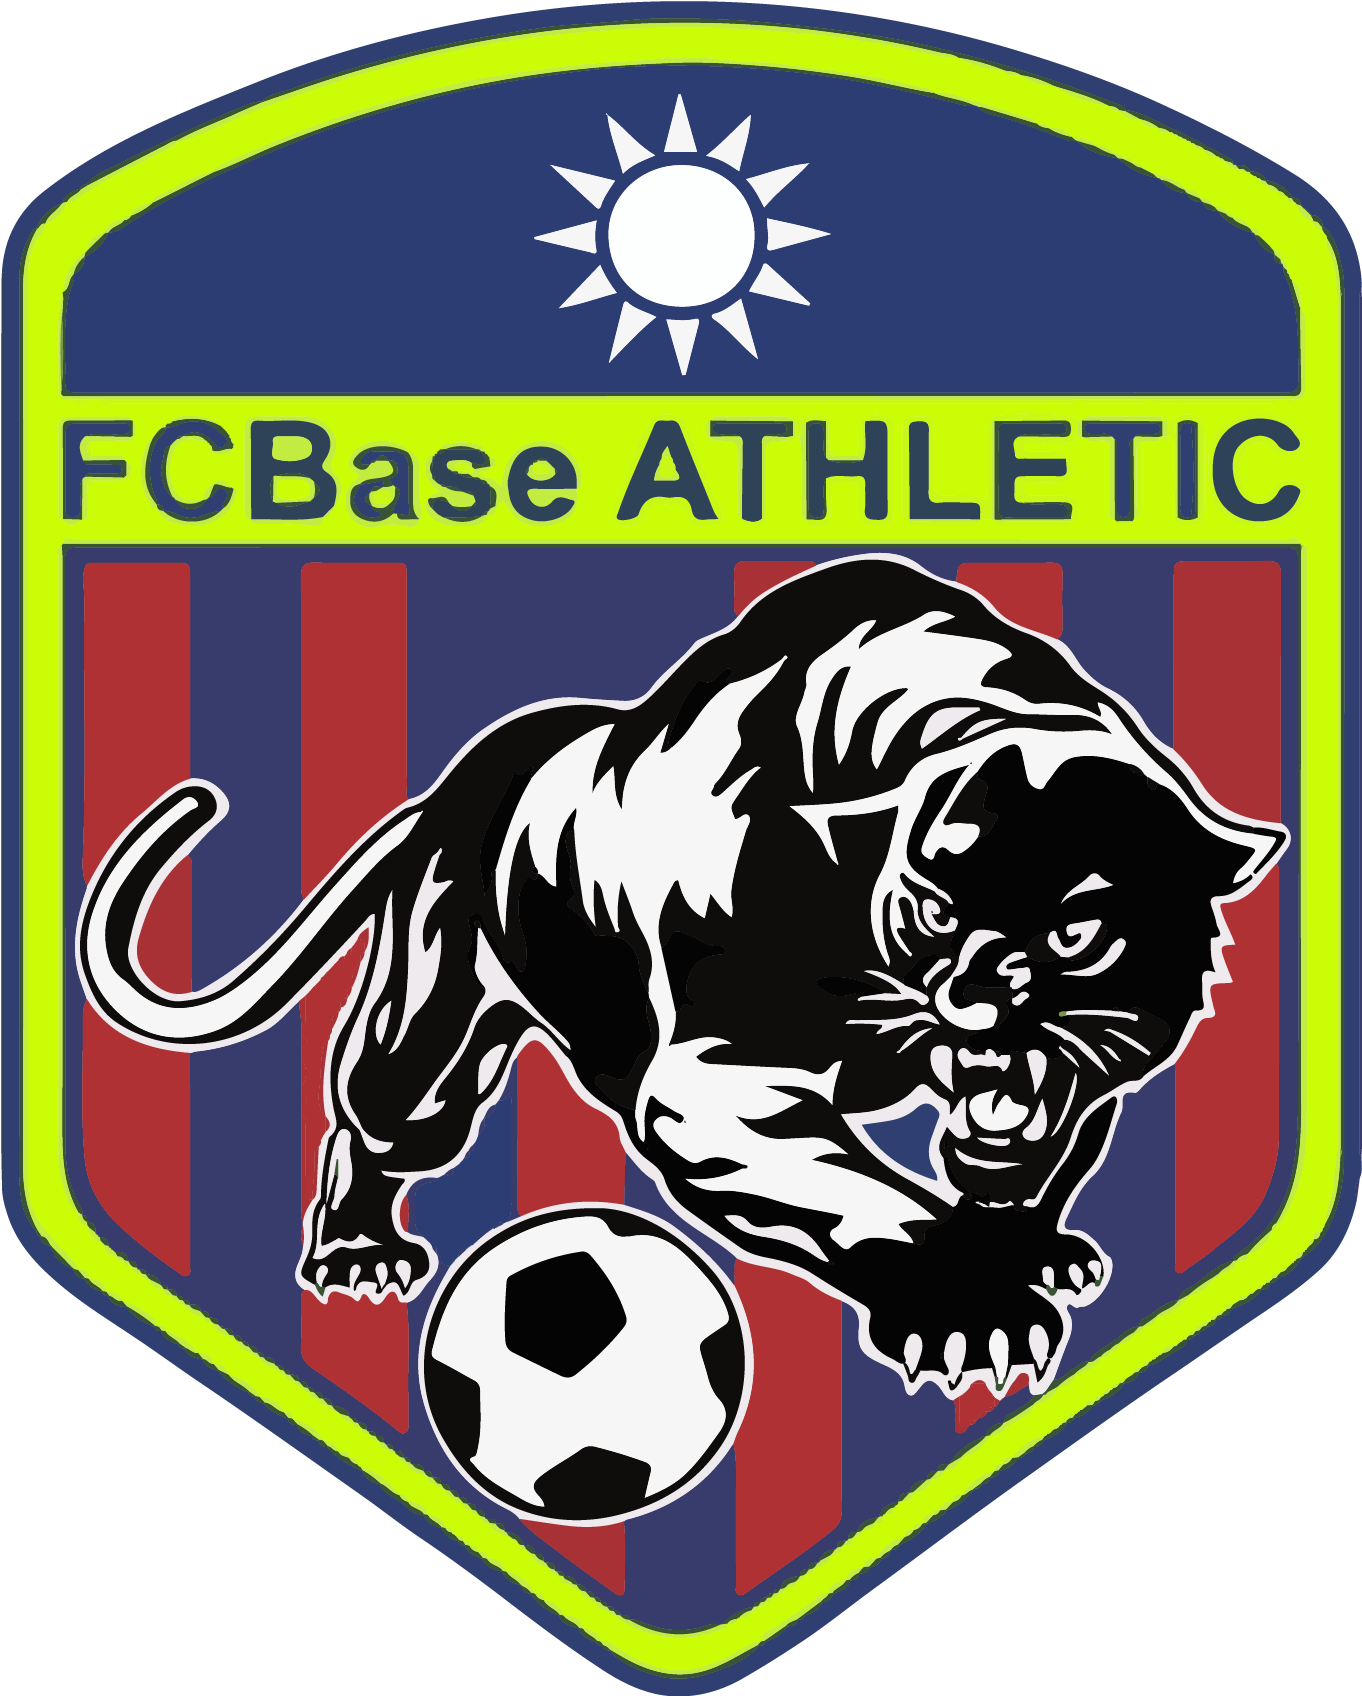 FCBase ATHLETIC